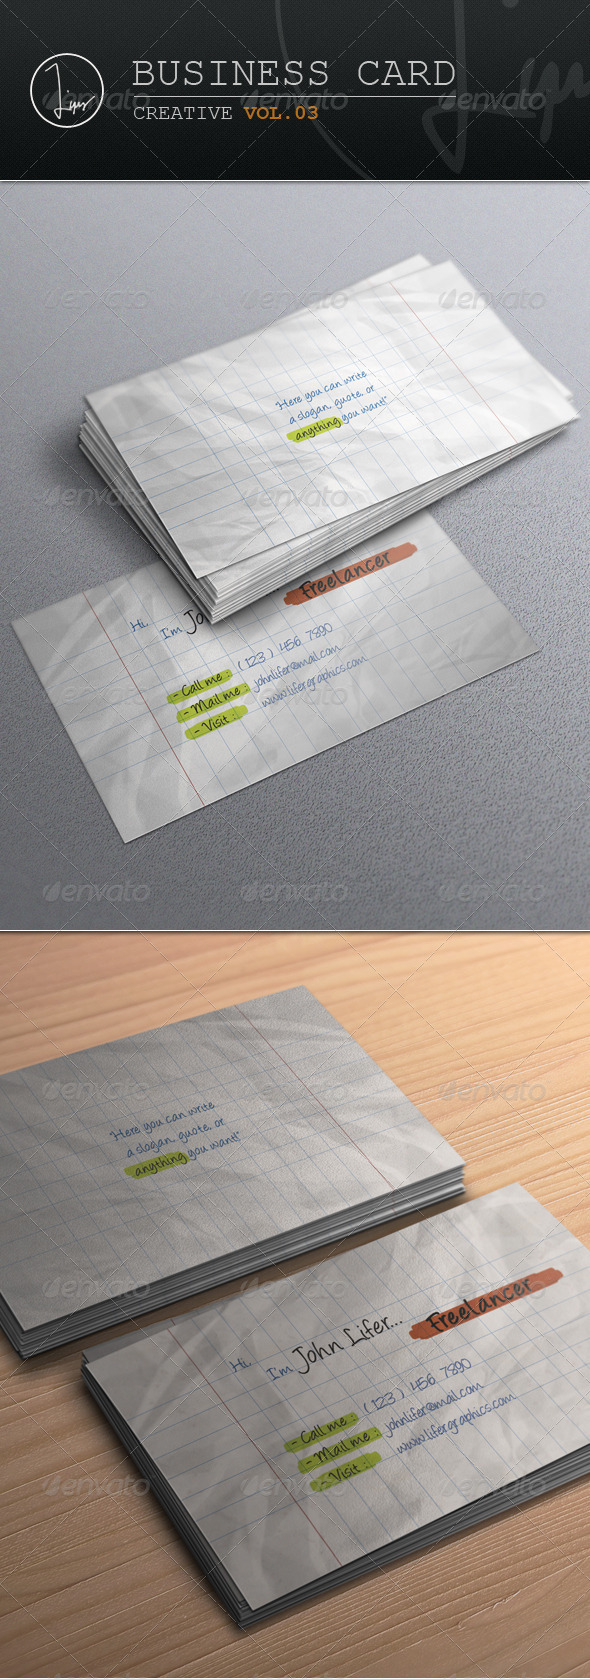 Business Card / Creative Vol.03 - Creative Business Cards